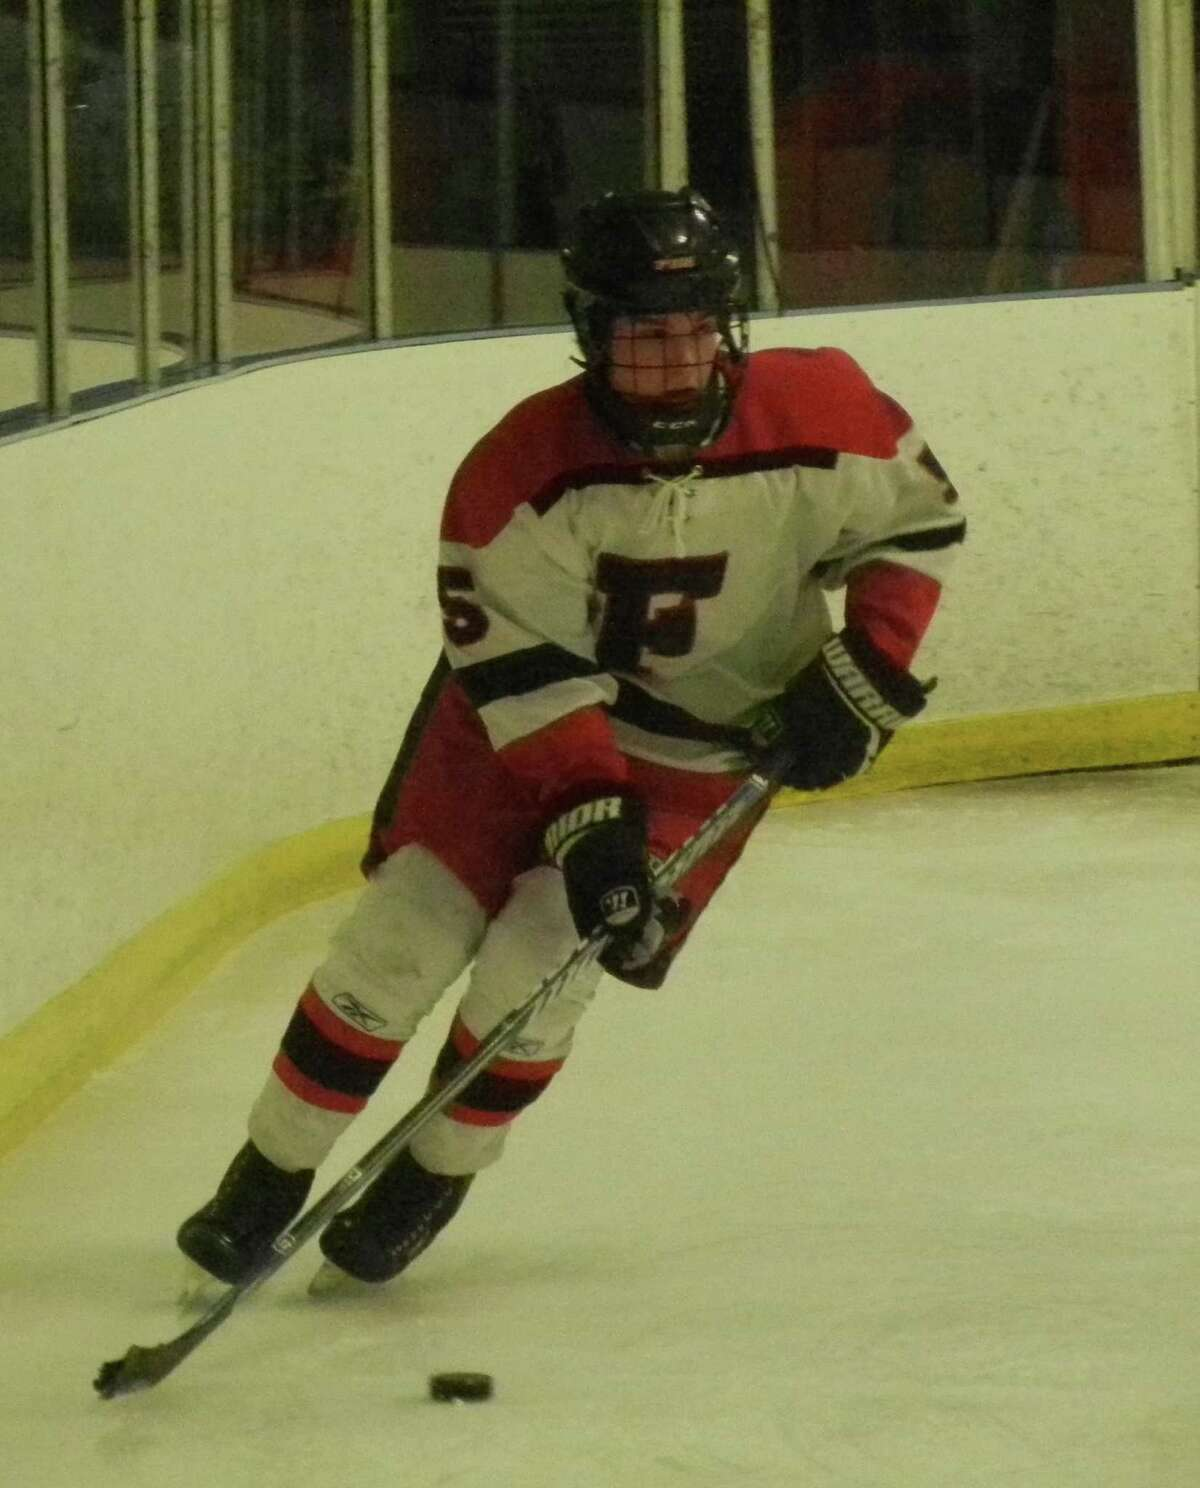 Fairfield co-op's Trevor Demilt behnd the goal in his team's 7-1 FCIAC boys ice hockey victory over Stamford on Monday, Feb. 24 at the Wonderland Of Ice in Bridgeport. He had a goal and an assist.